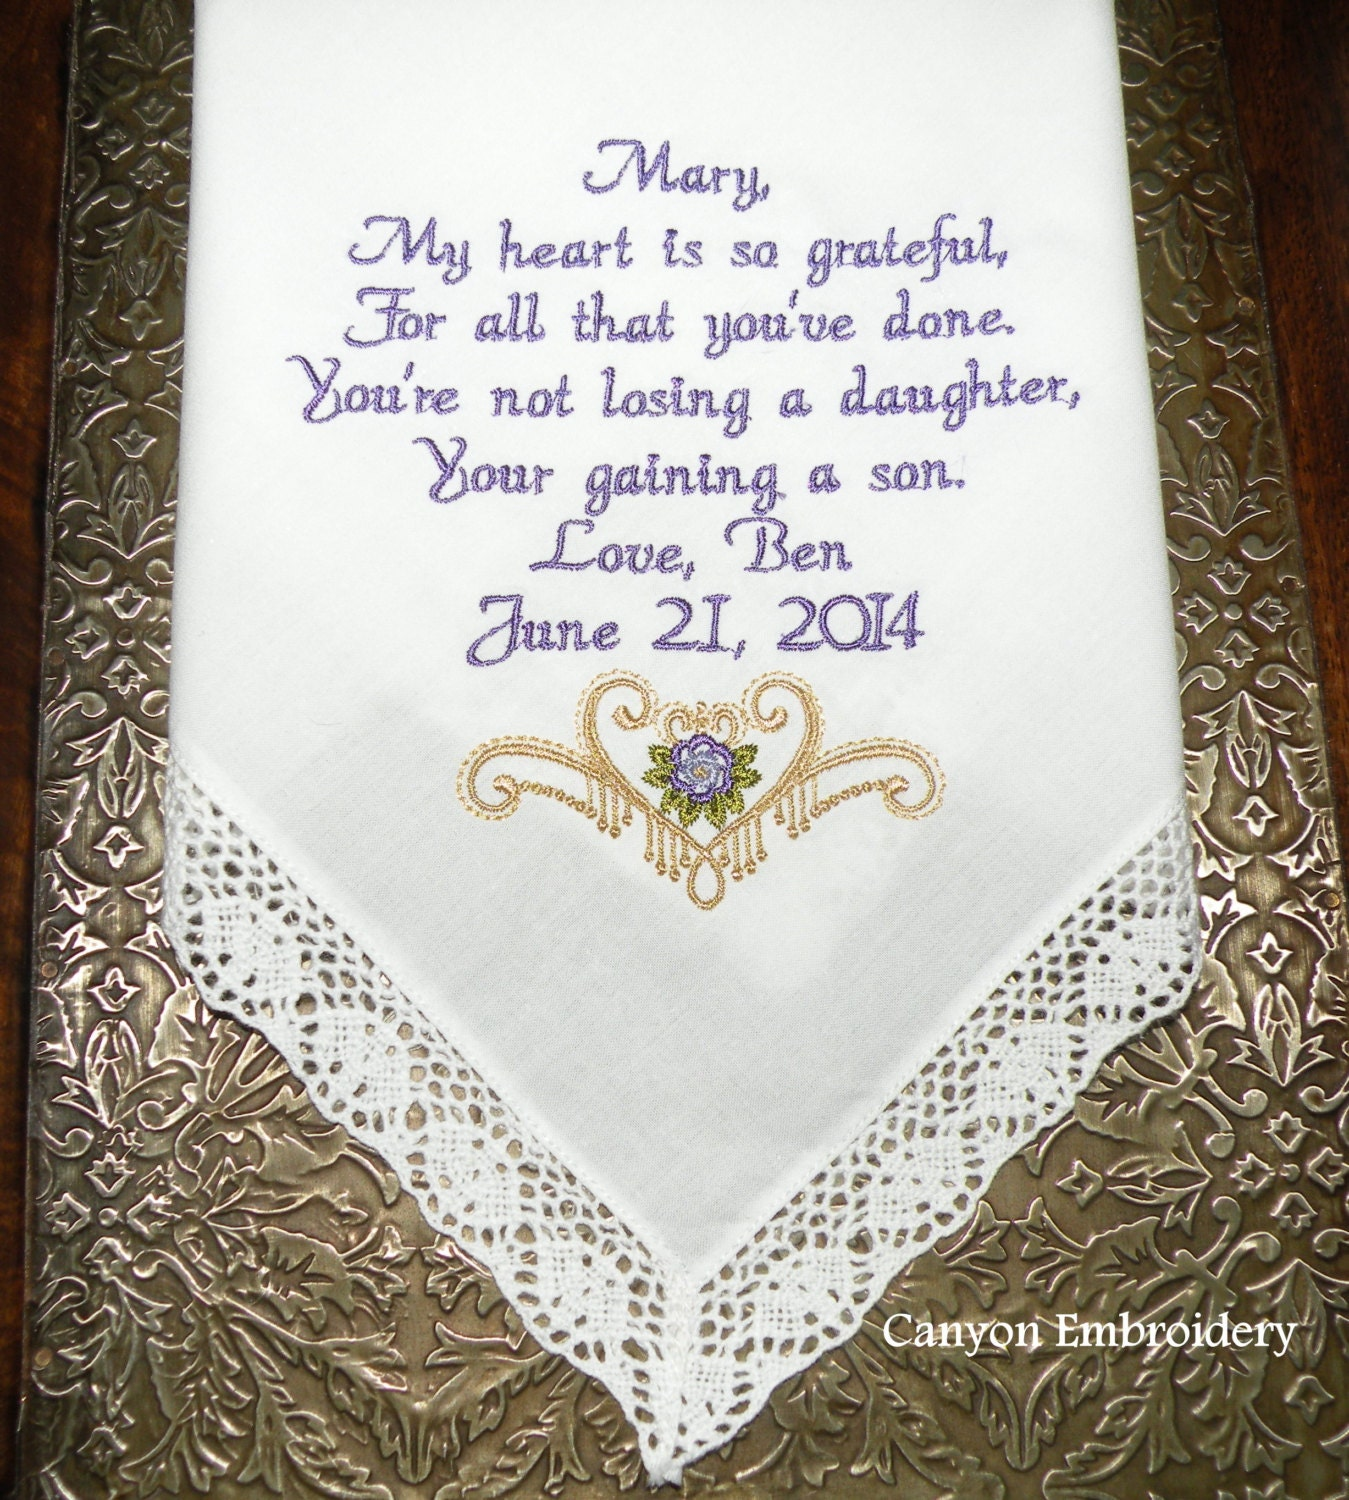 Mother In Law Gifts Wedding: Mother In Law Wedding Gift From Bride Personalize Embroidered